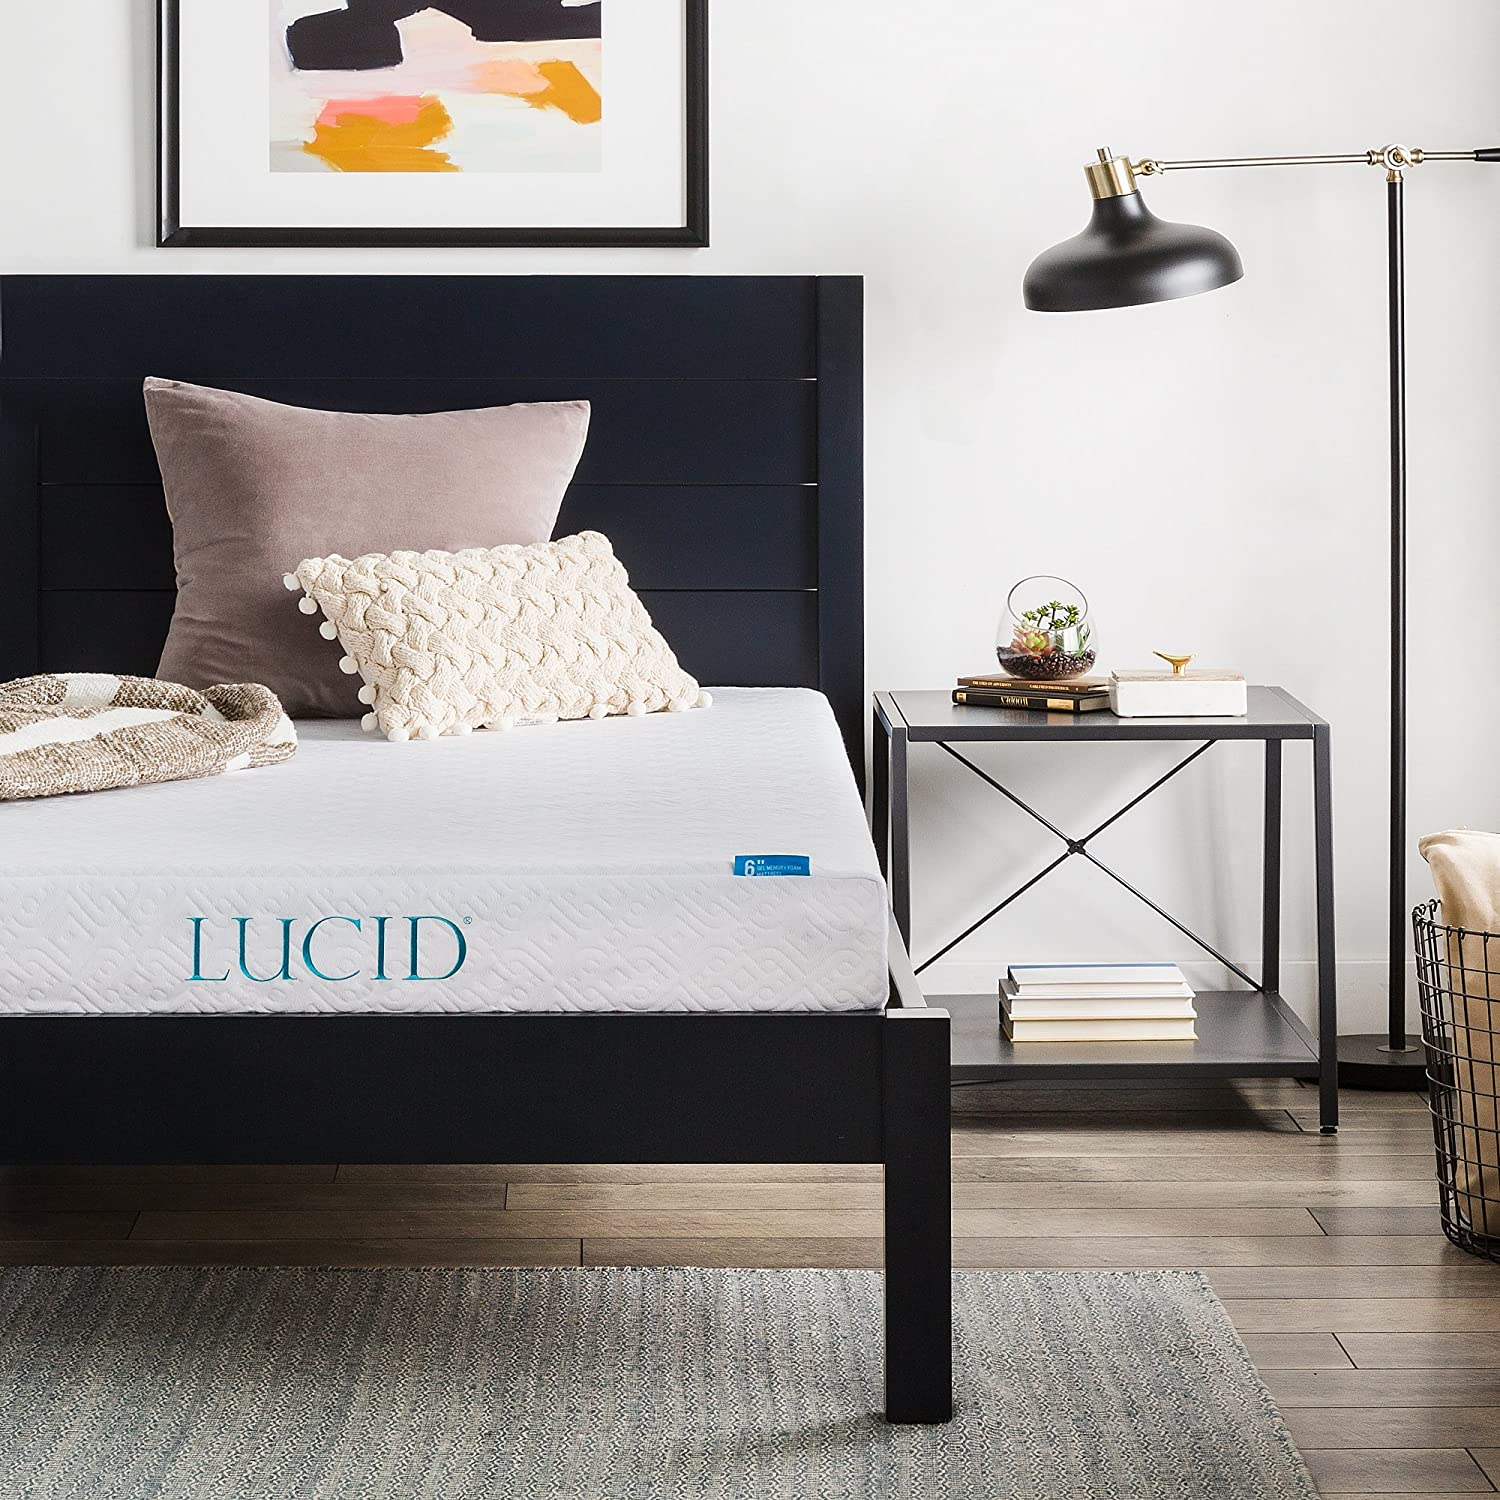 Lucid 6 Inch Memory Foam Mattress, Dual-Layered, CertiPUR-US Certified, Firm Feel, Twin X-Large Size CVB Inc LU06TX45MF